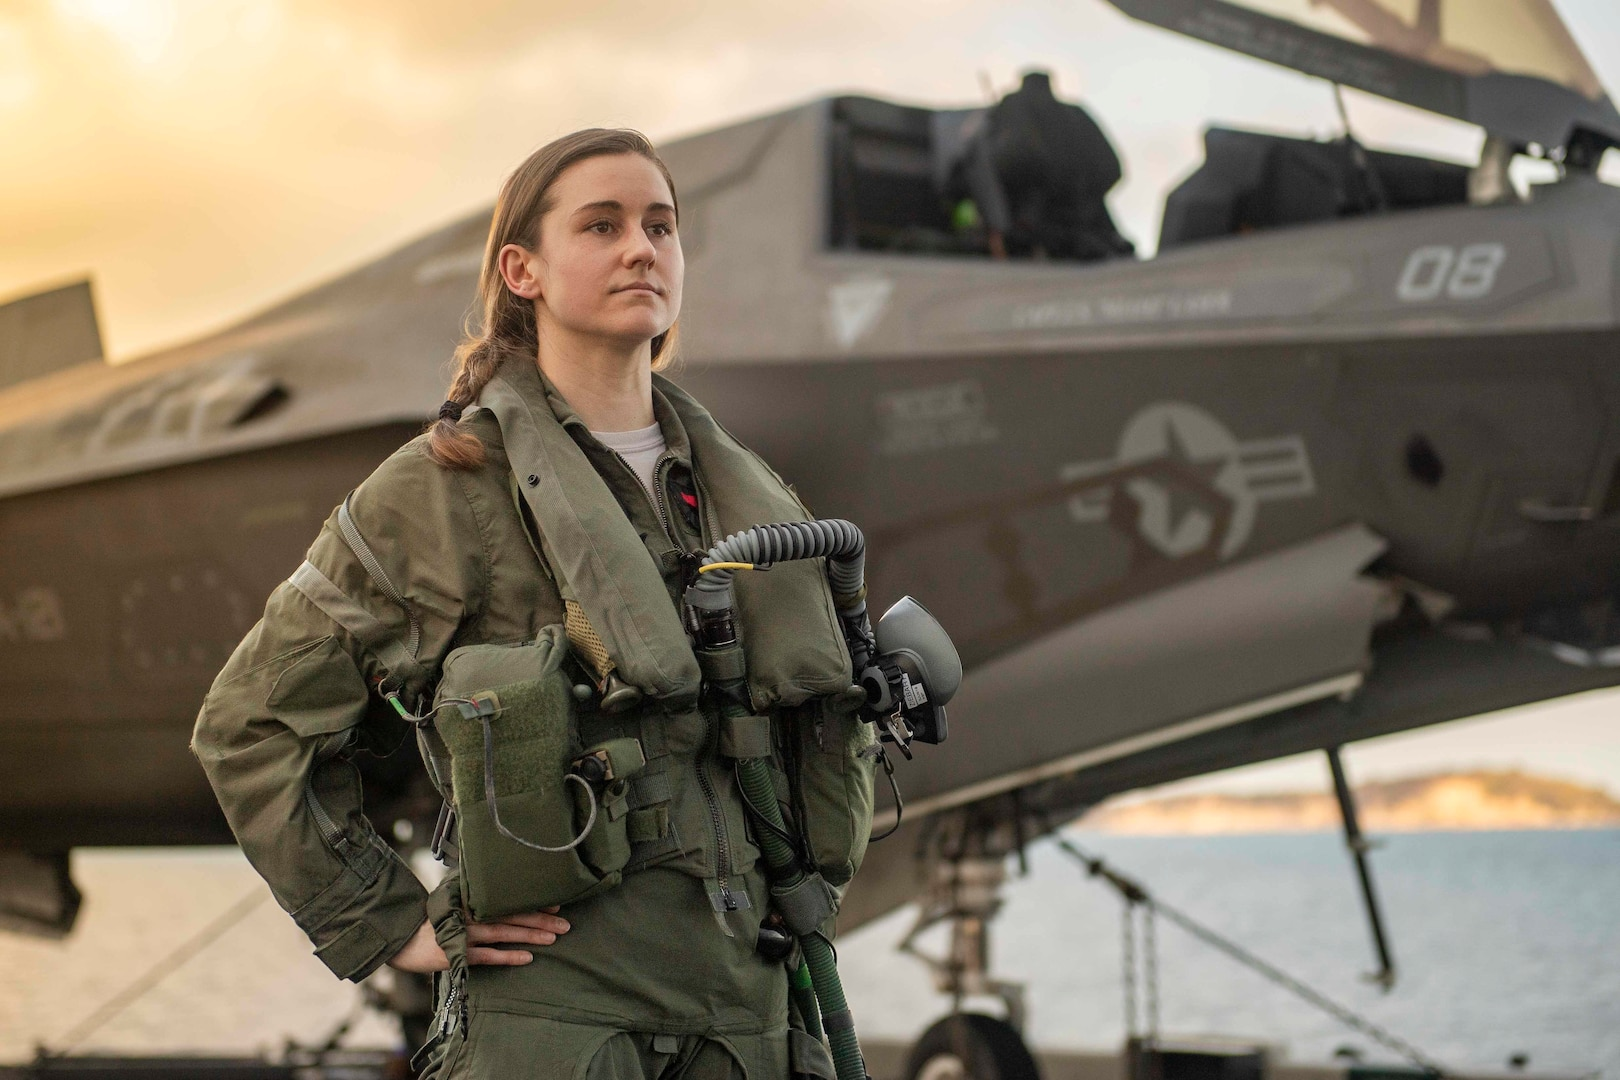 U.S. Air Force pilot Captain Melanie Ziebart, one of six Air Force pilots flying F-35B Lightning II stealth multirole fighters in Marine squadrons to disseminate inter-Service tactics and strengthen joint force capabilities, on flight deck of amphibious assault ship USS America, flies with 31st Marine Expeditionary Unit Marine Fighter Attack Squadron (VMFA) 121 Green Knights, Gulf of Thailand, March 7, 2020 (U.S. Navy/Jonathan Berlier)